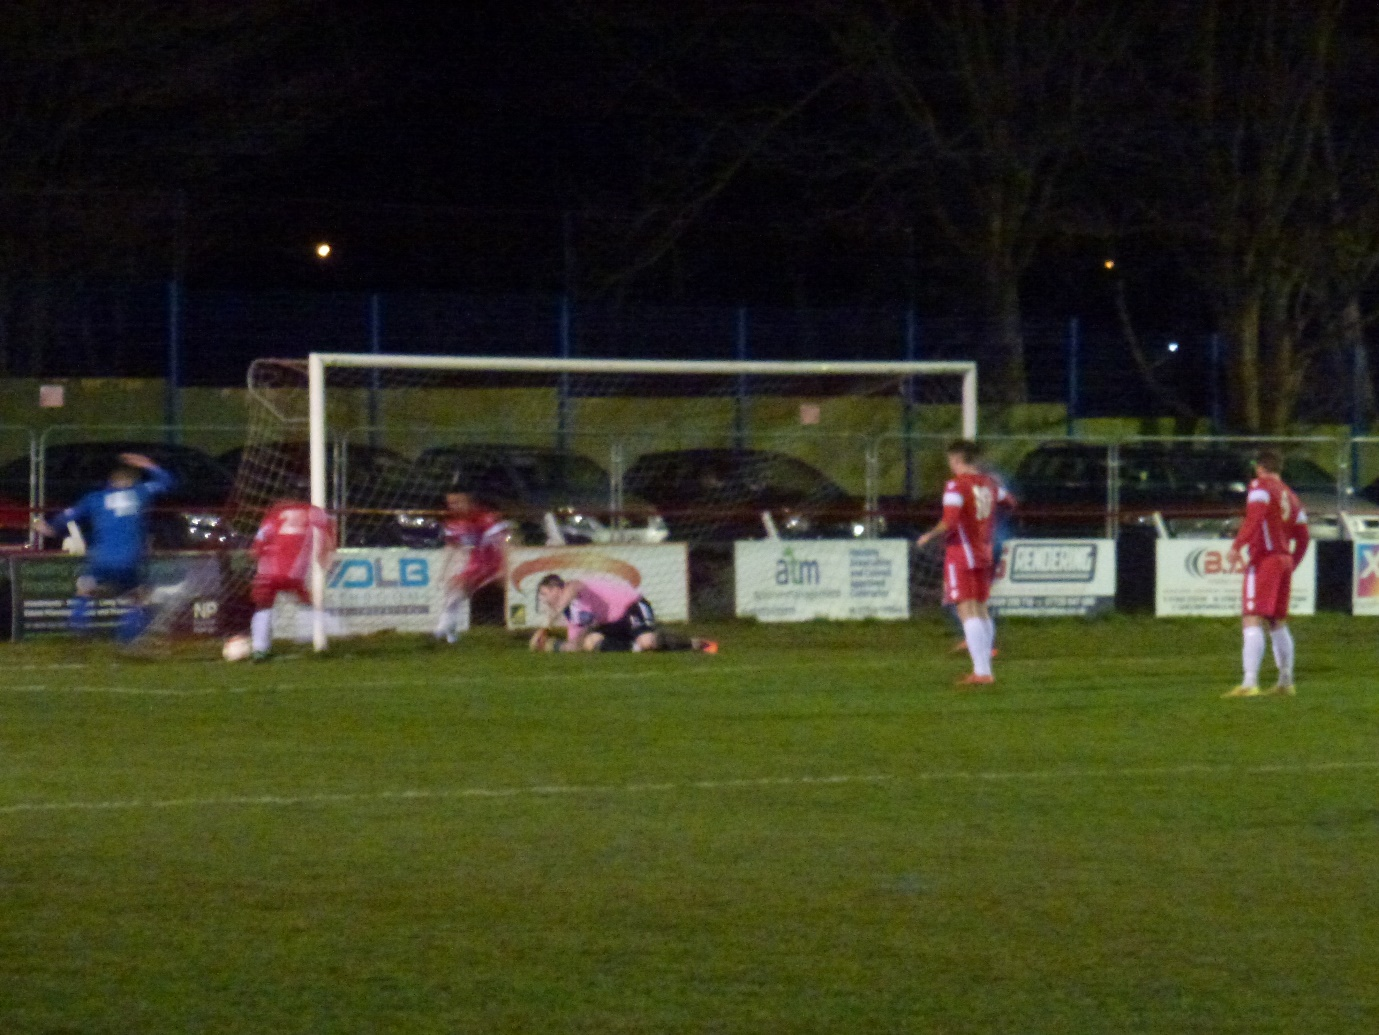 A match where players' increasing frustration became evident as they strove to score the elusive winning goal.